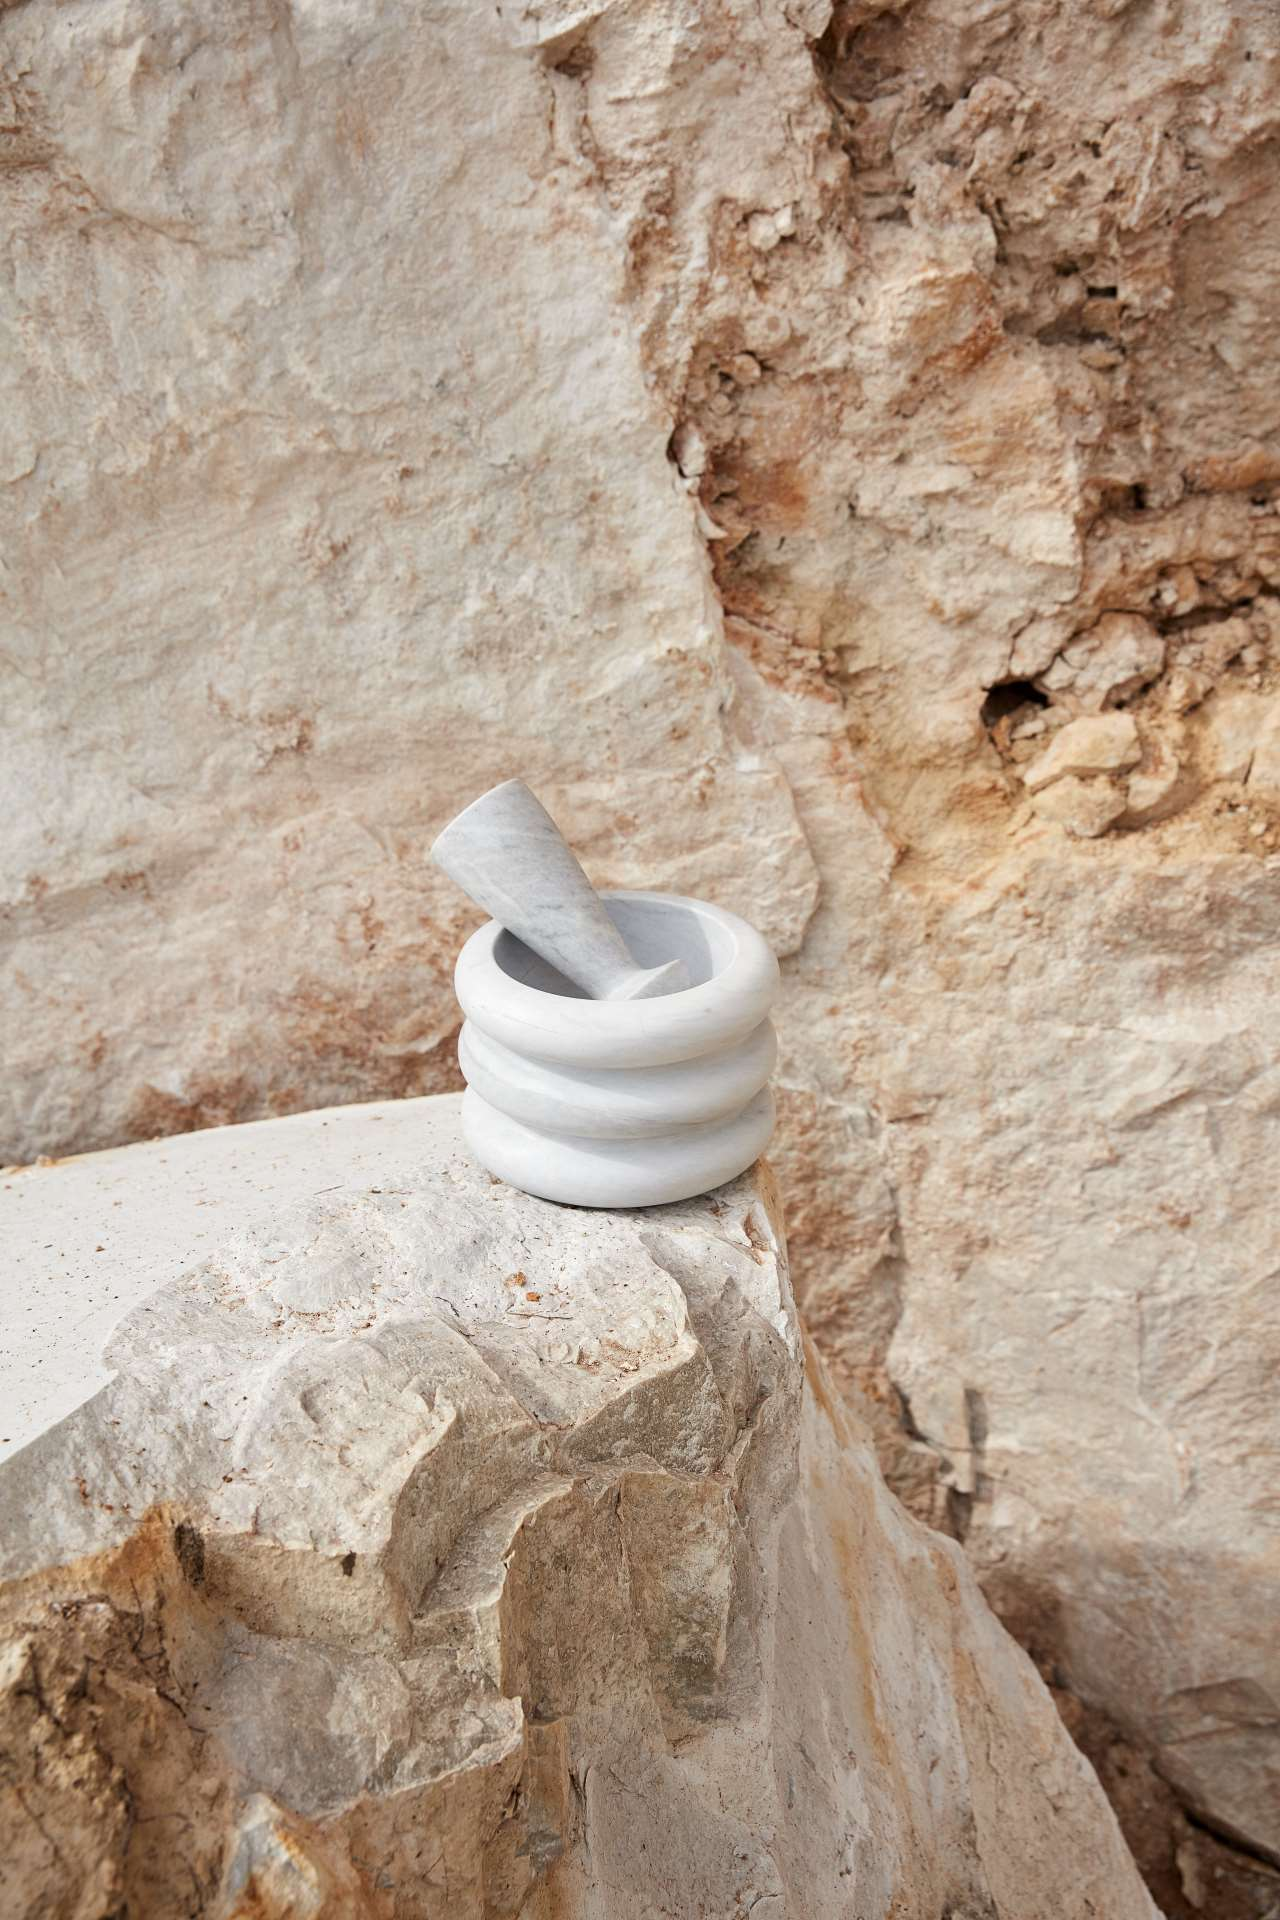 Napoleon & Josephine designed by Sarah King, Elba marble. Mortar ø175 x 110mm. Pestle ø65 x 150mm. Part of New Volumes collection by Artedomus. Photo by Sean Fennessy.